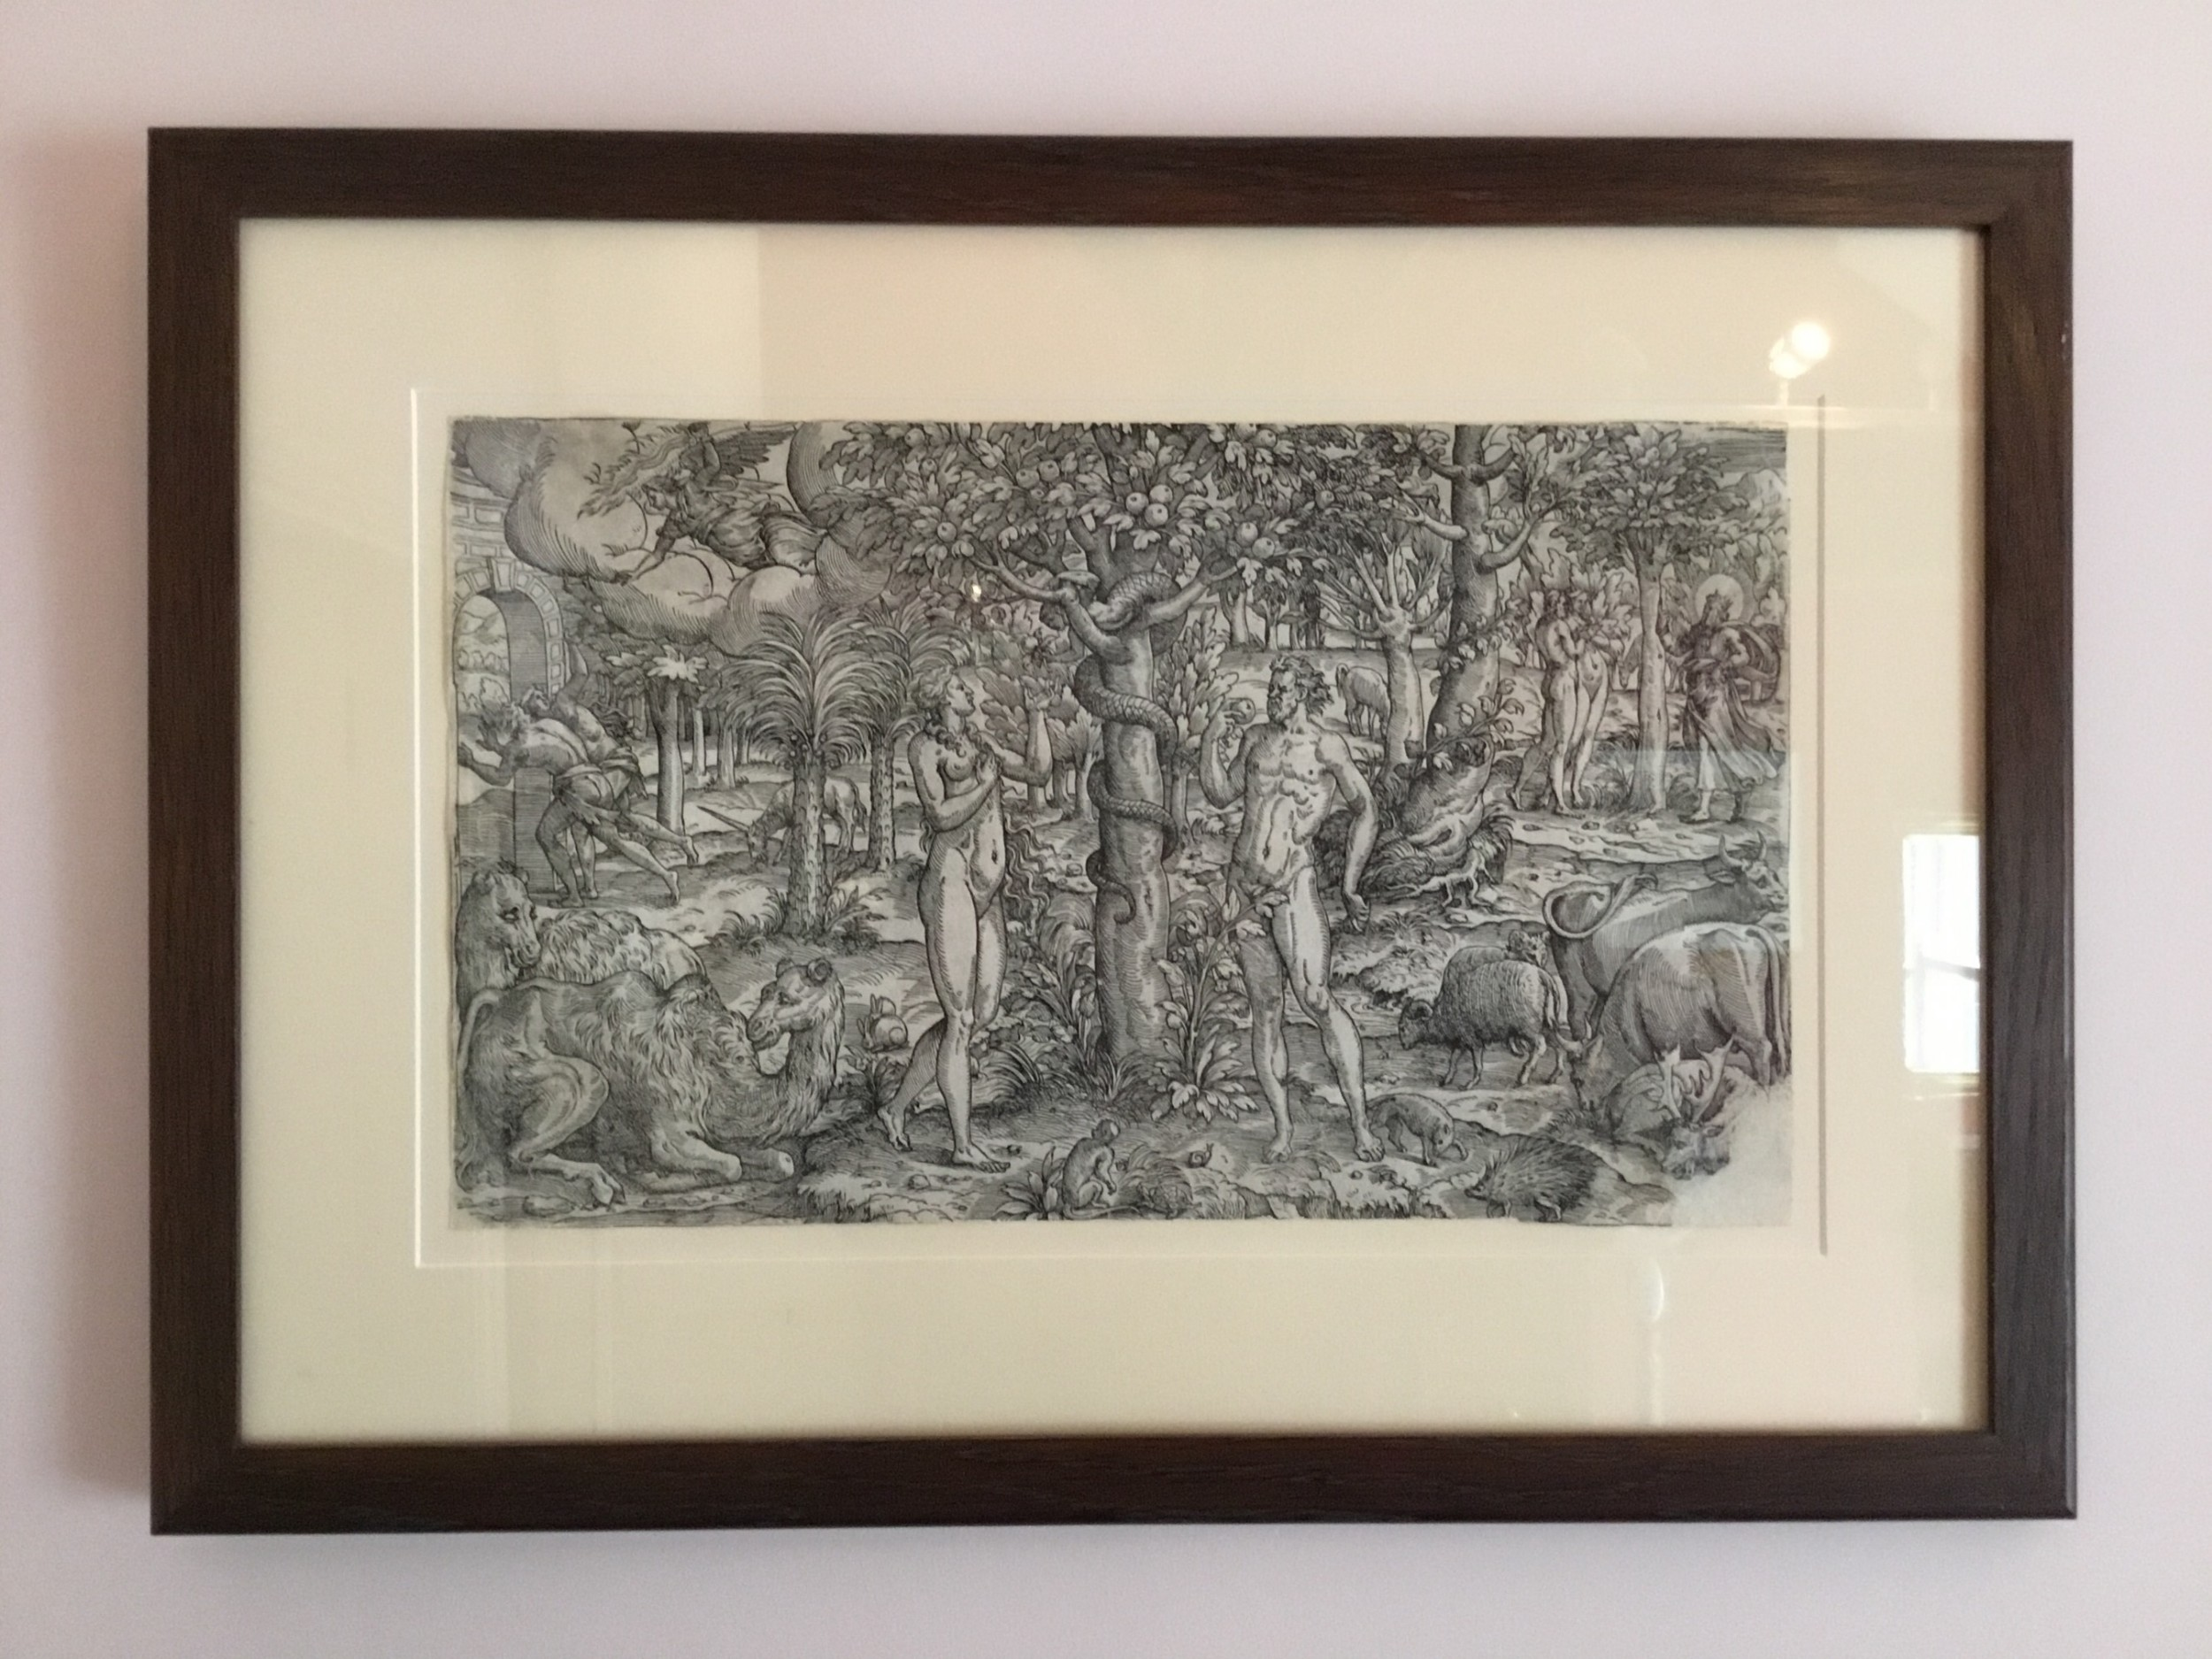 adam and eve in the garden of eden a 16th century print